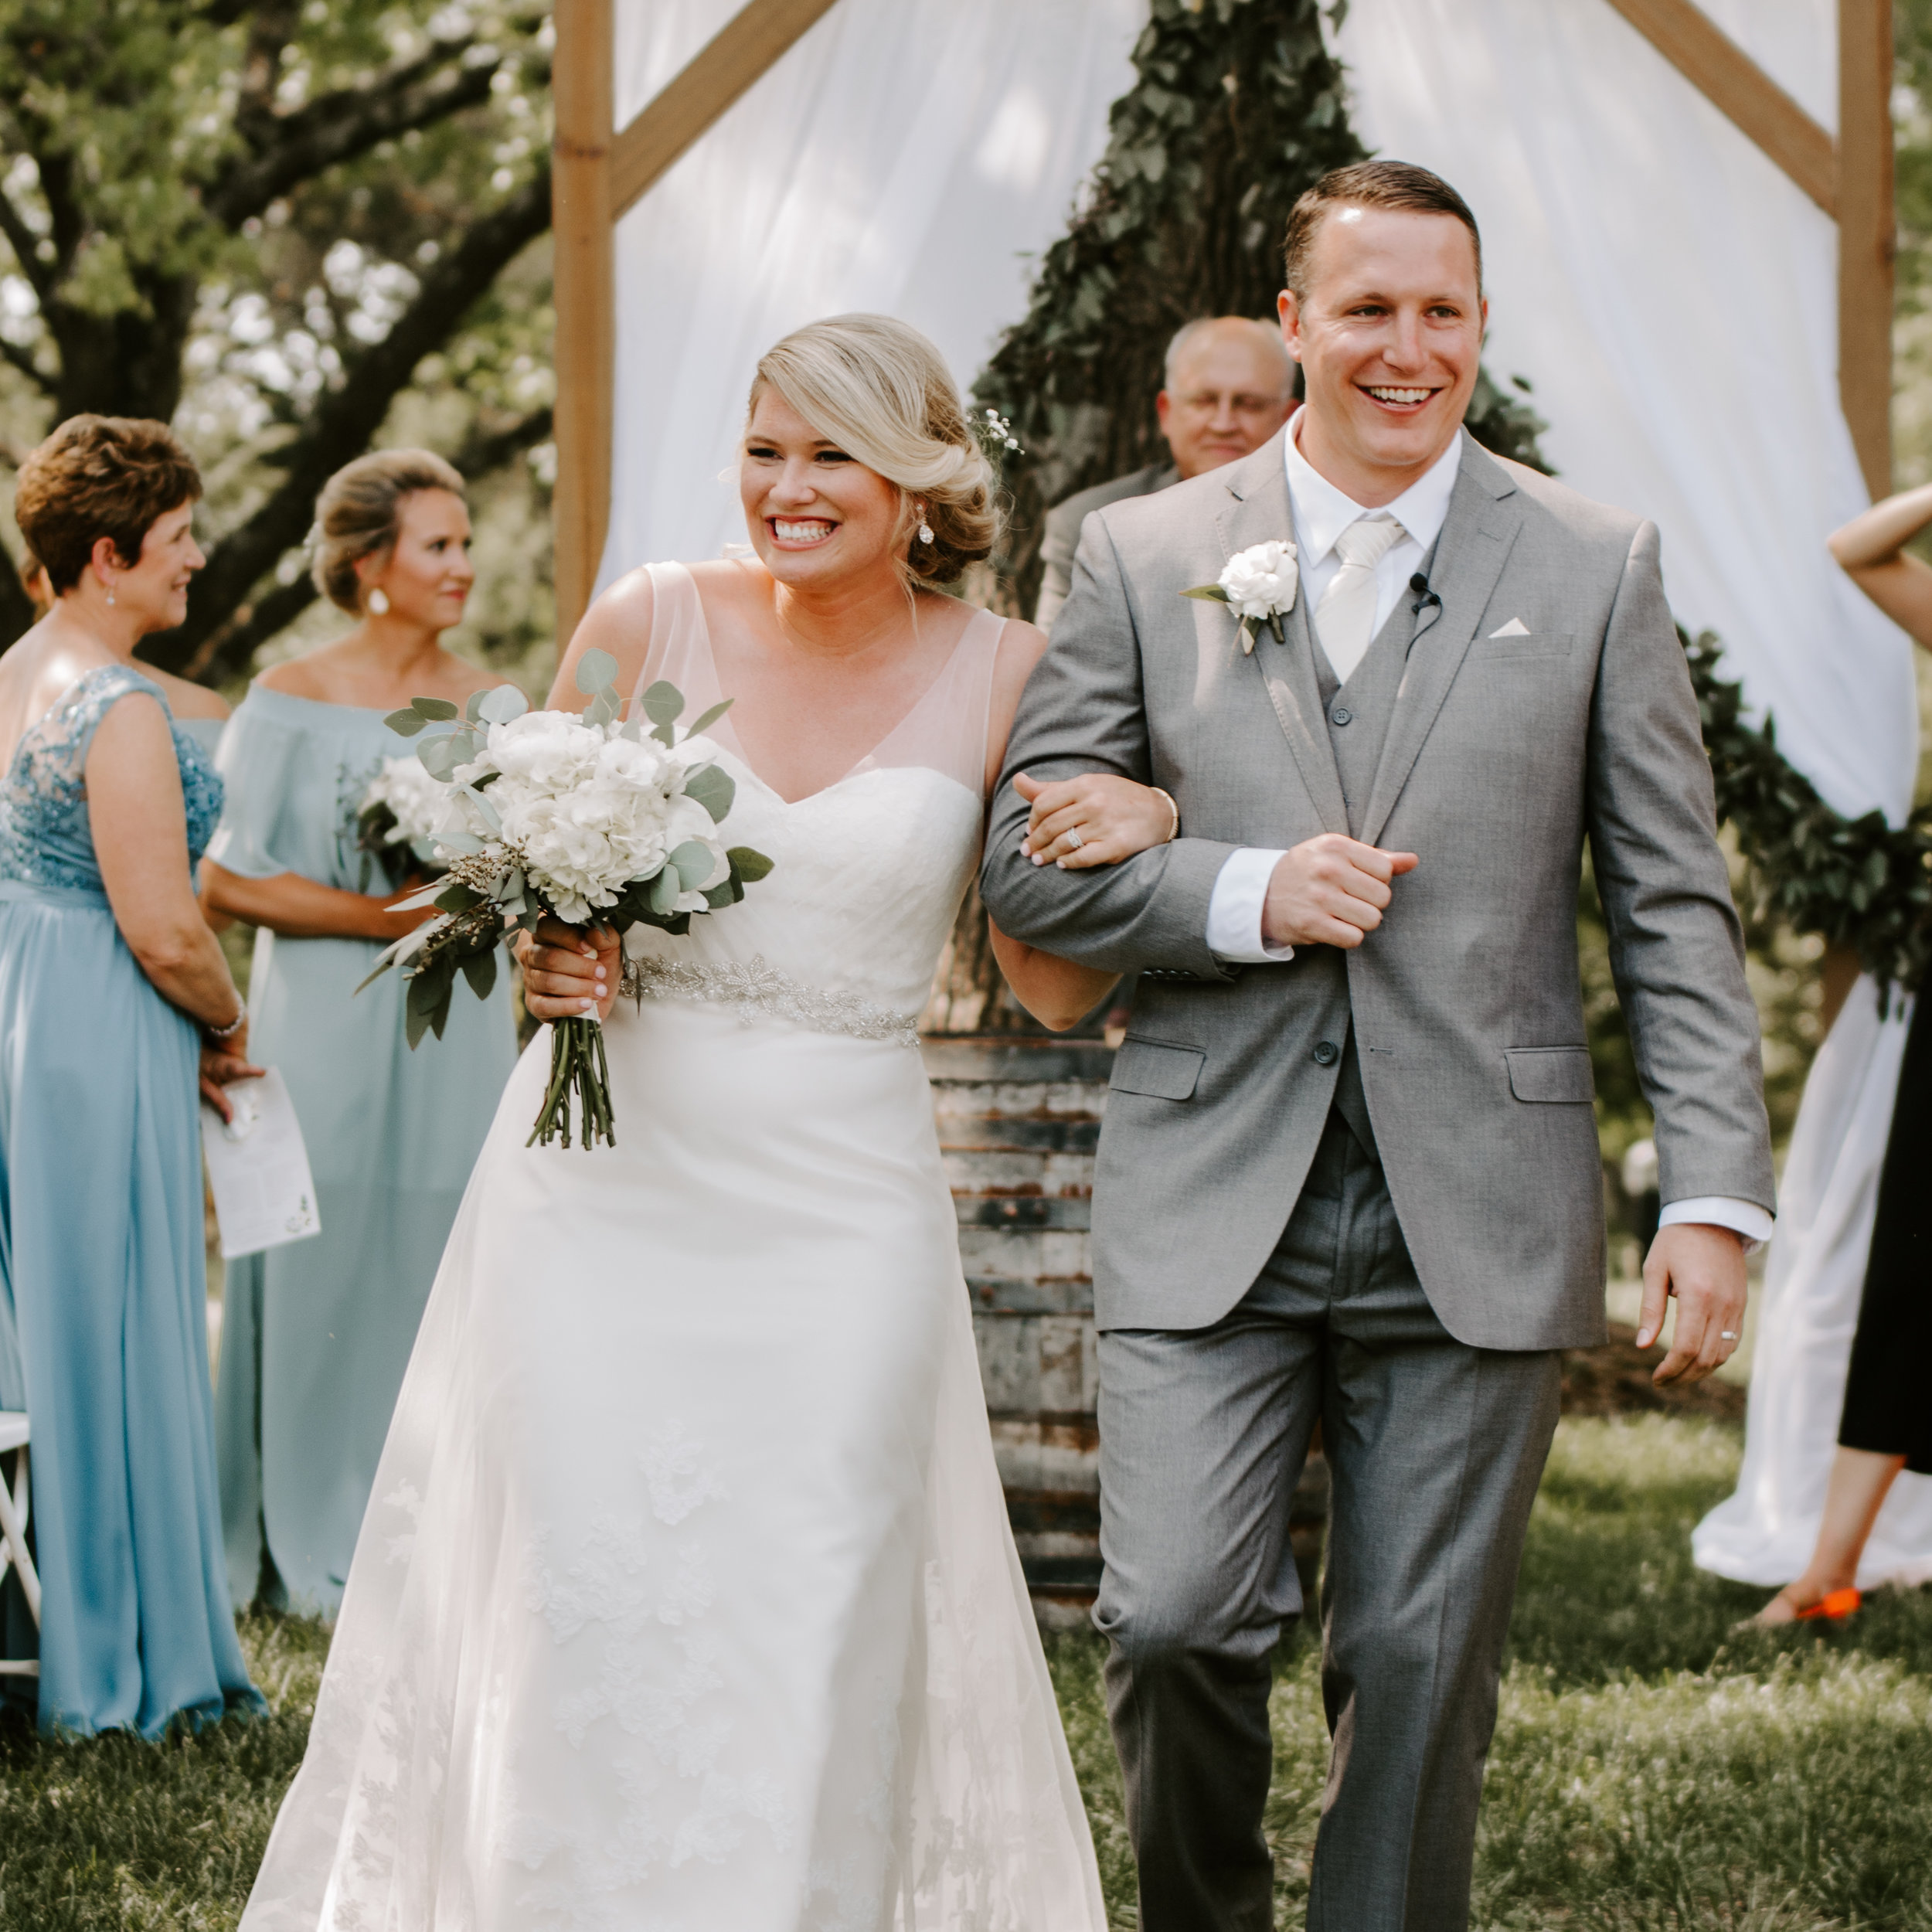 The Barn at Cedar Creek Wedding Missouri by Kerri Carlquist Photography